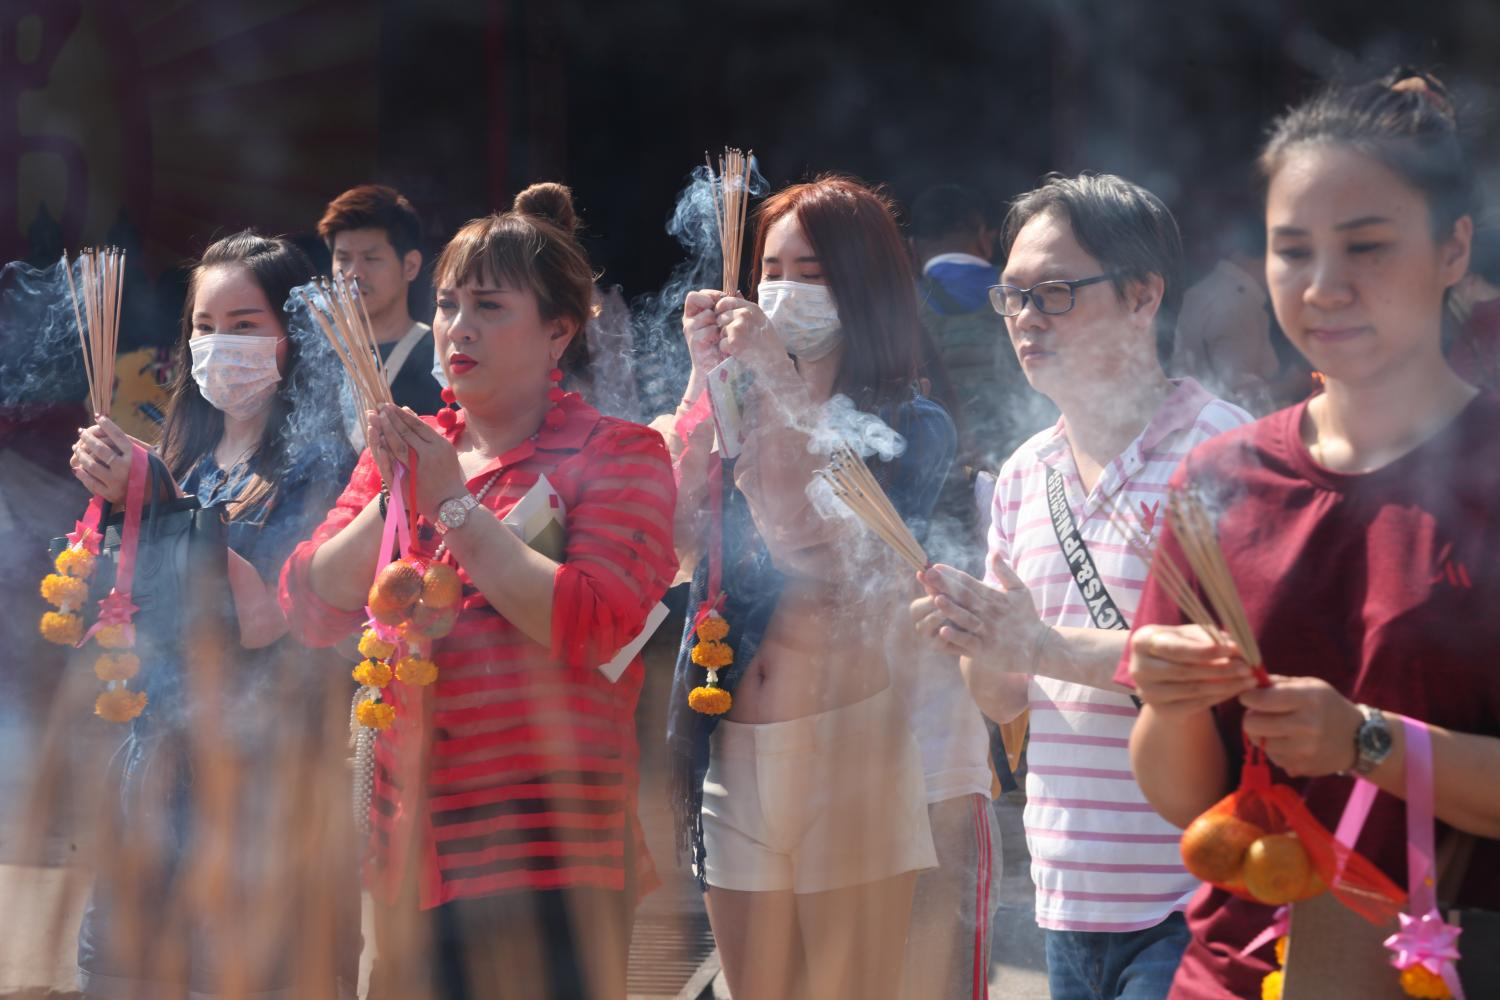 Passive smoking: Wat Mangkon Kamalawat, a famous Chinese Buddhist temple in Yaowarat is trying to improve local air quality by reducing the number of incense burners and only allowing burning activities to occur in outside areas.